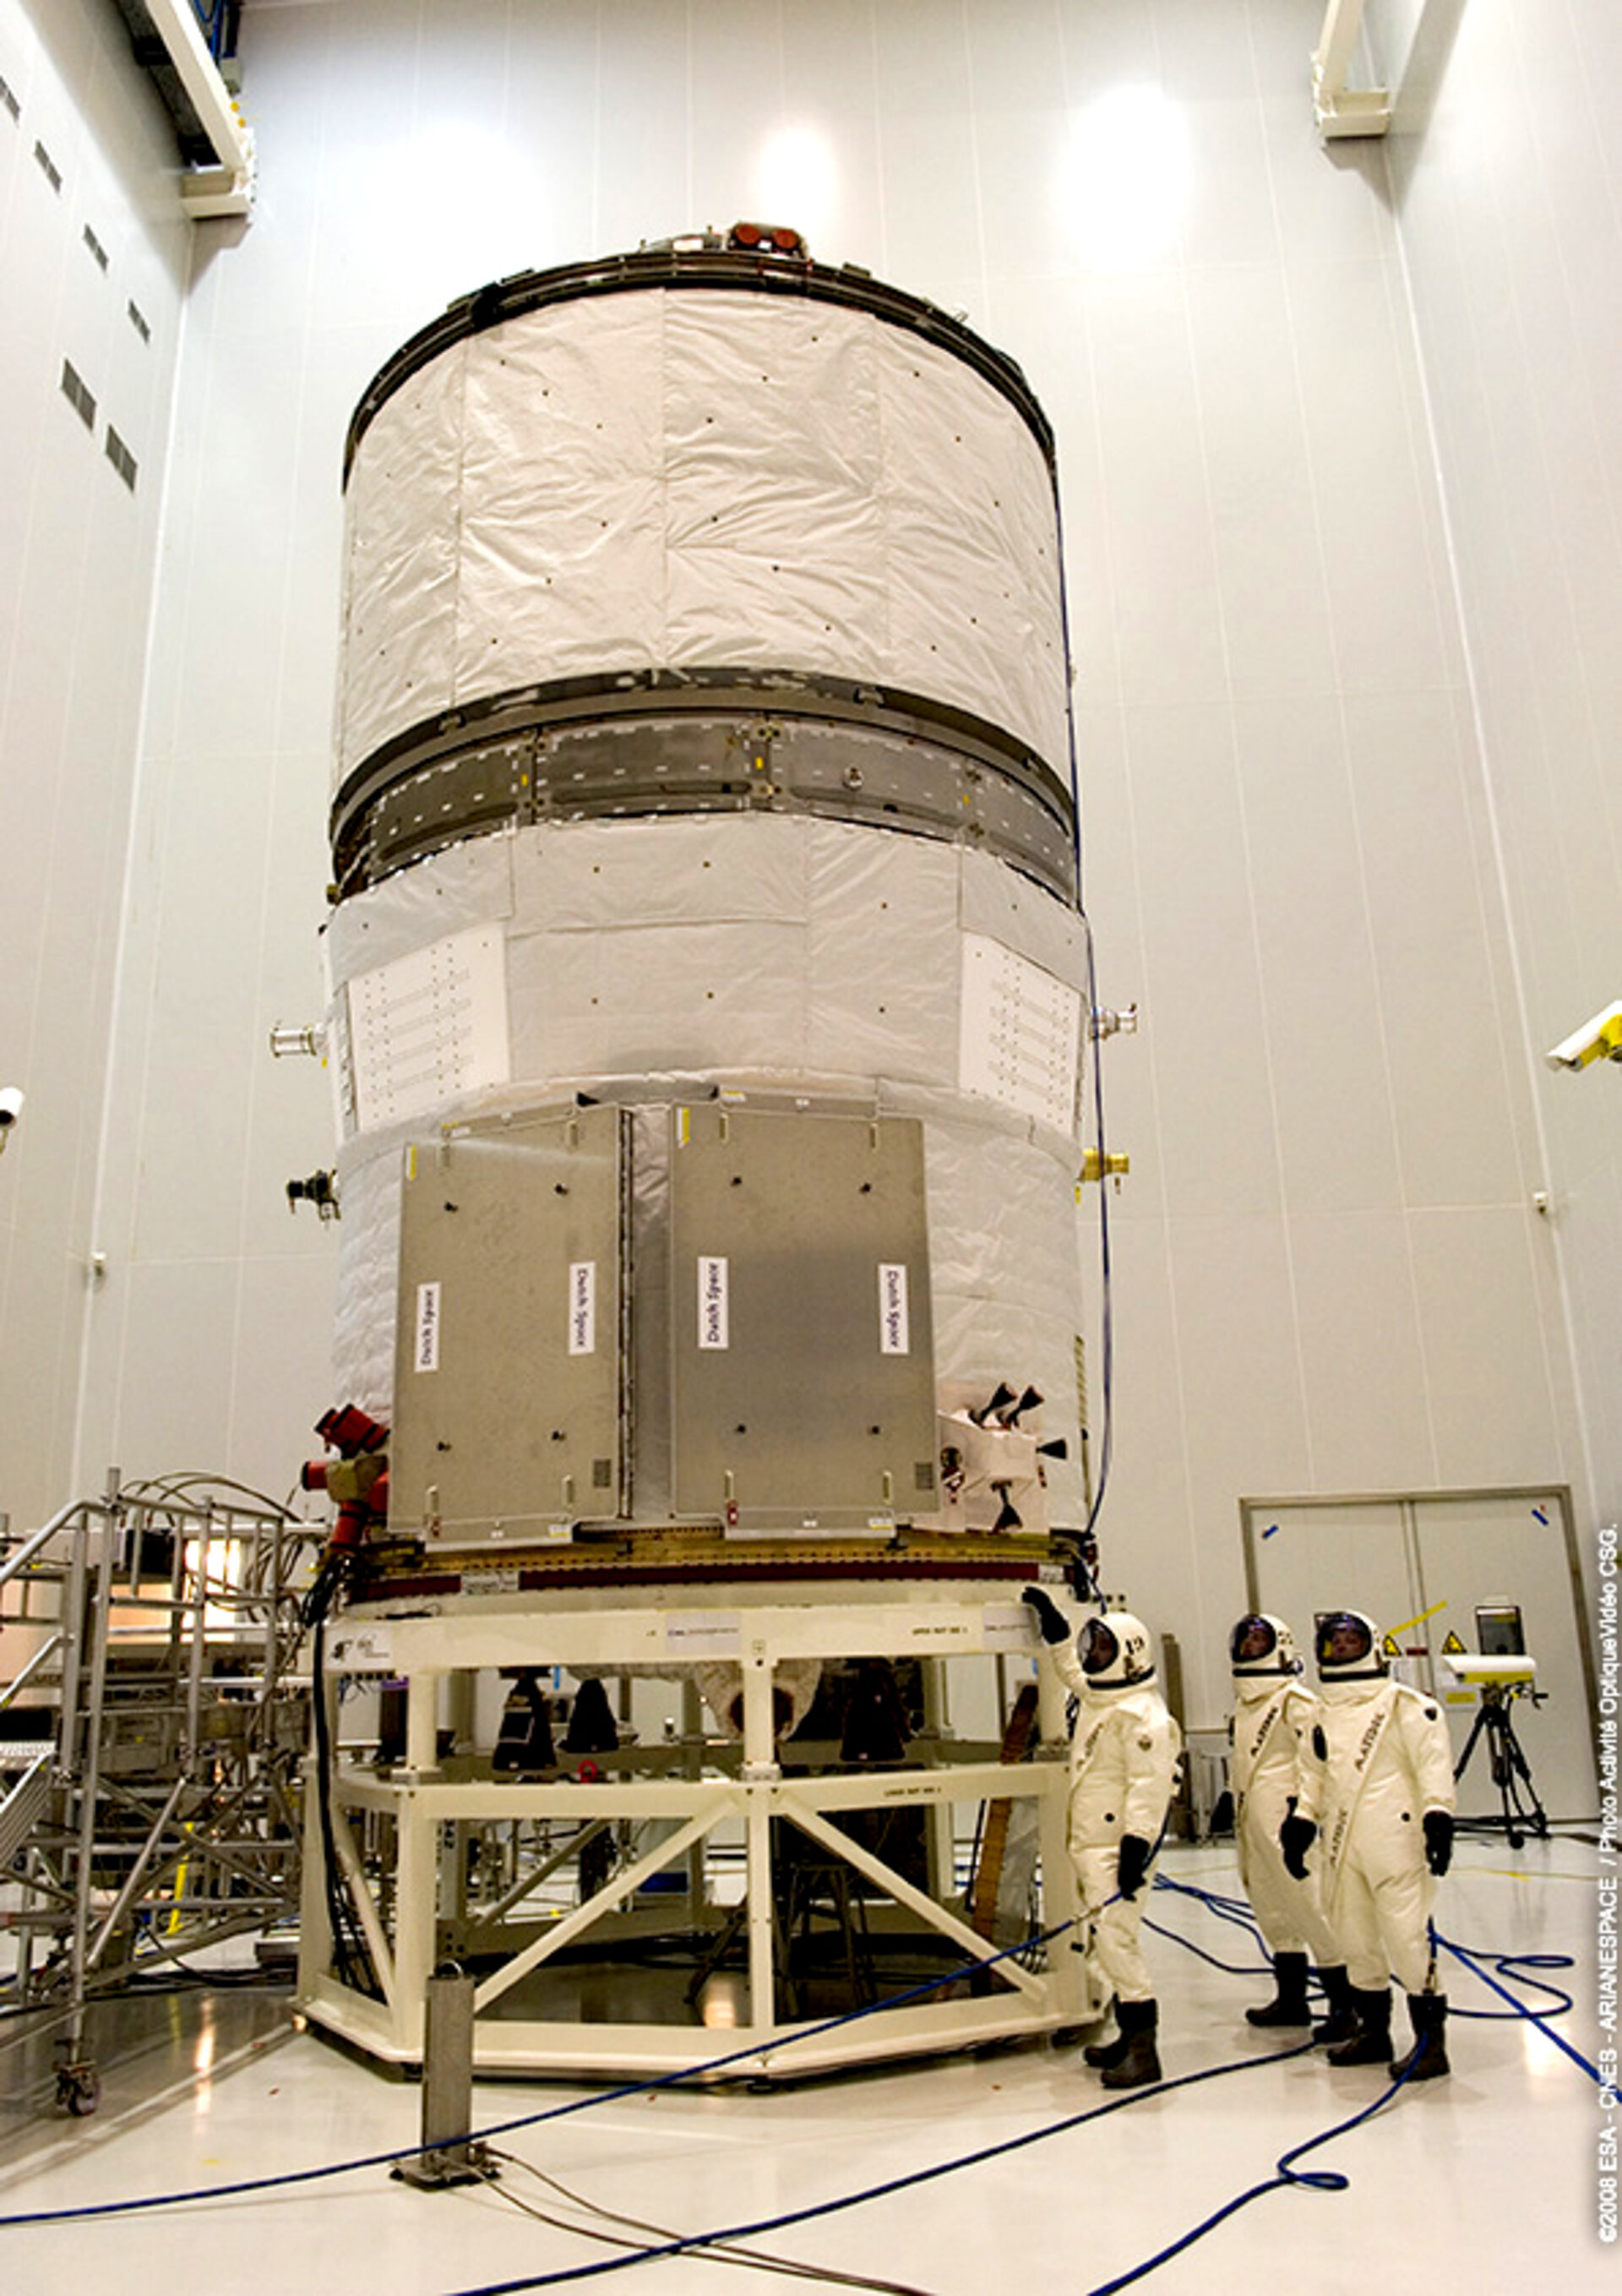 Jules Verne ATV fuelling operations at Europe's Spaceport in Kourou, French Guiana